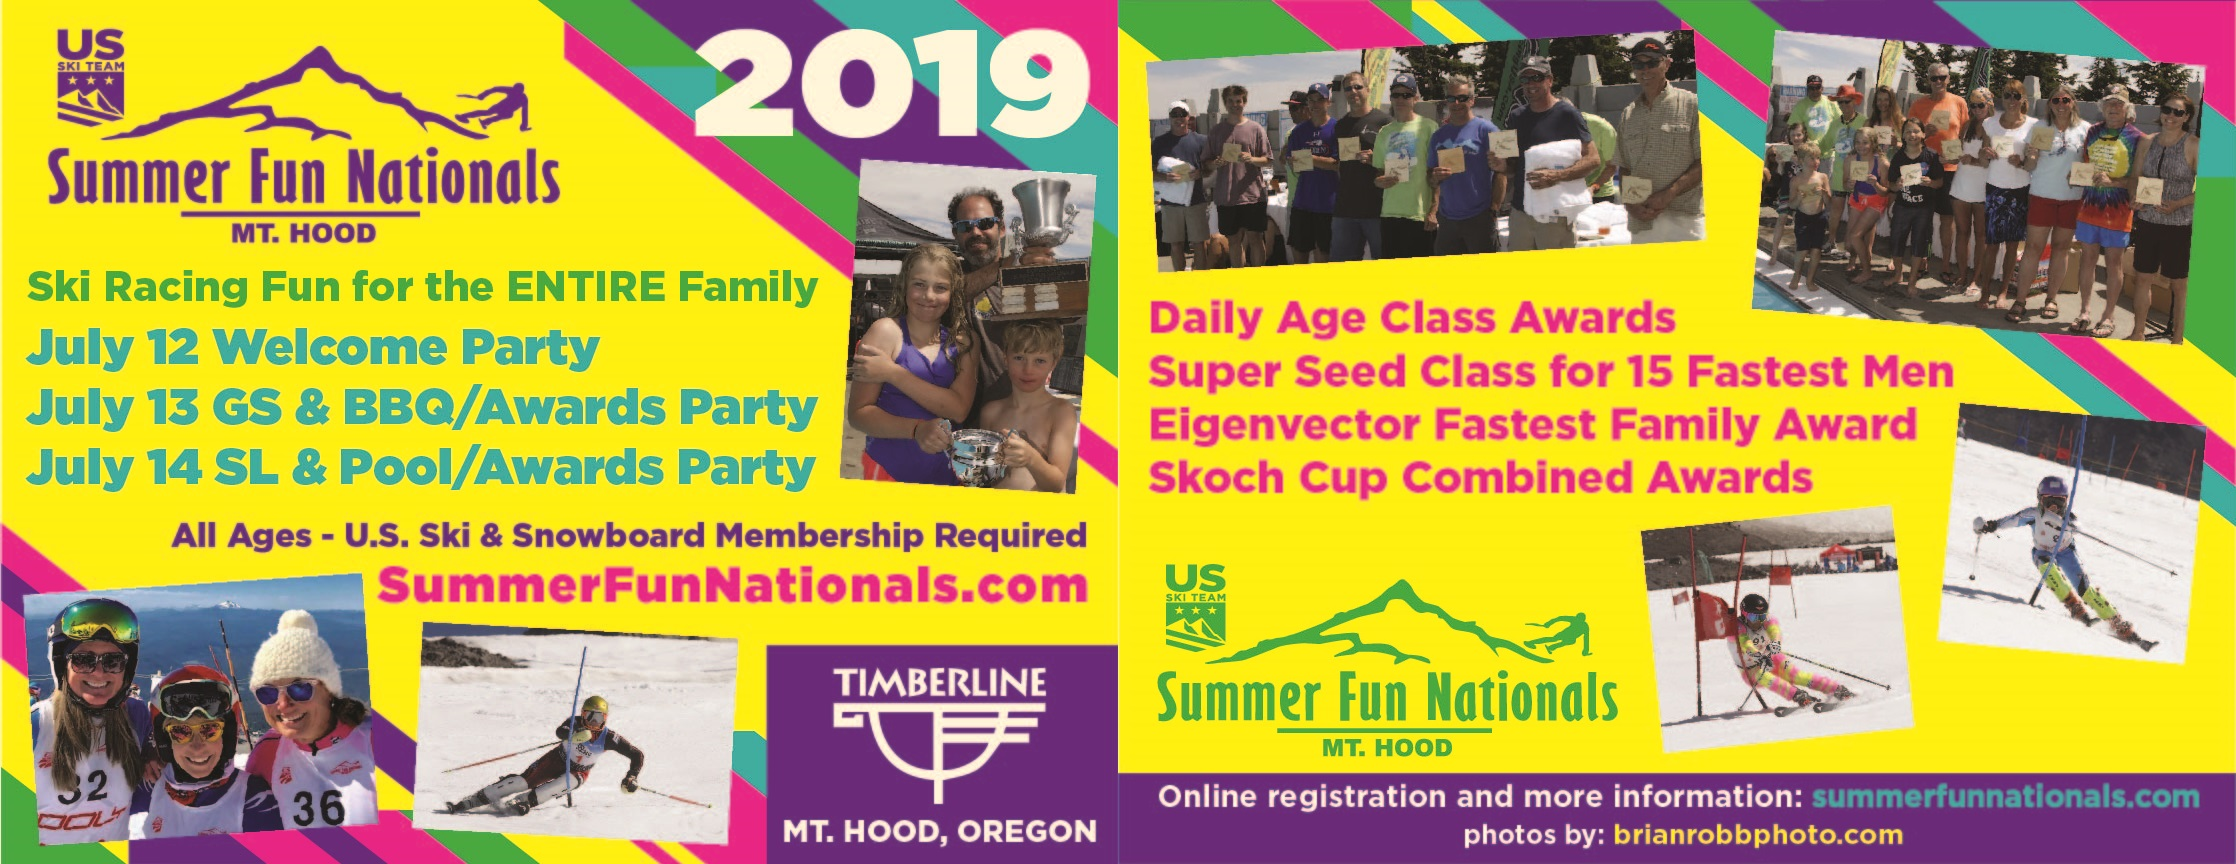 Summer Fun Nationals Flyer July 12-14, 2019